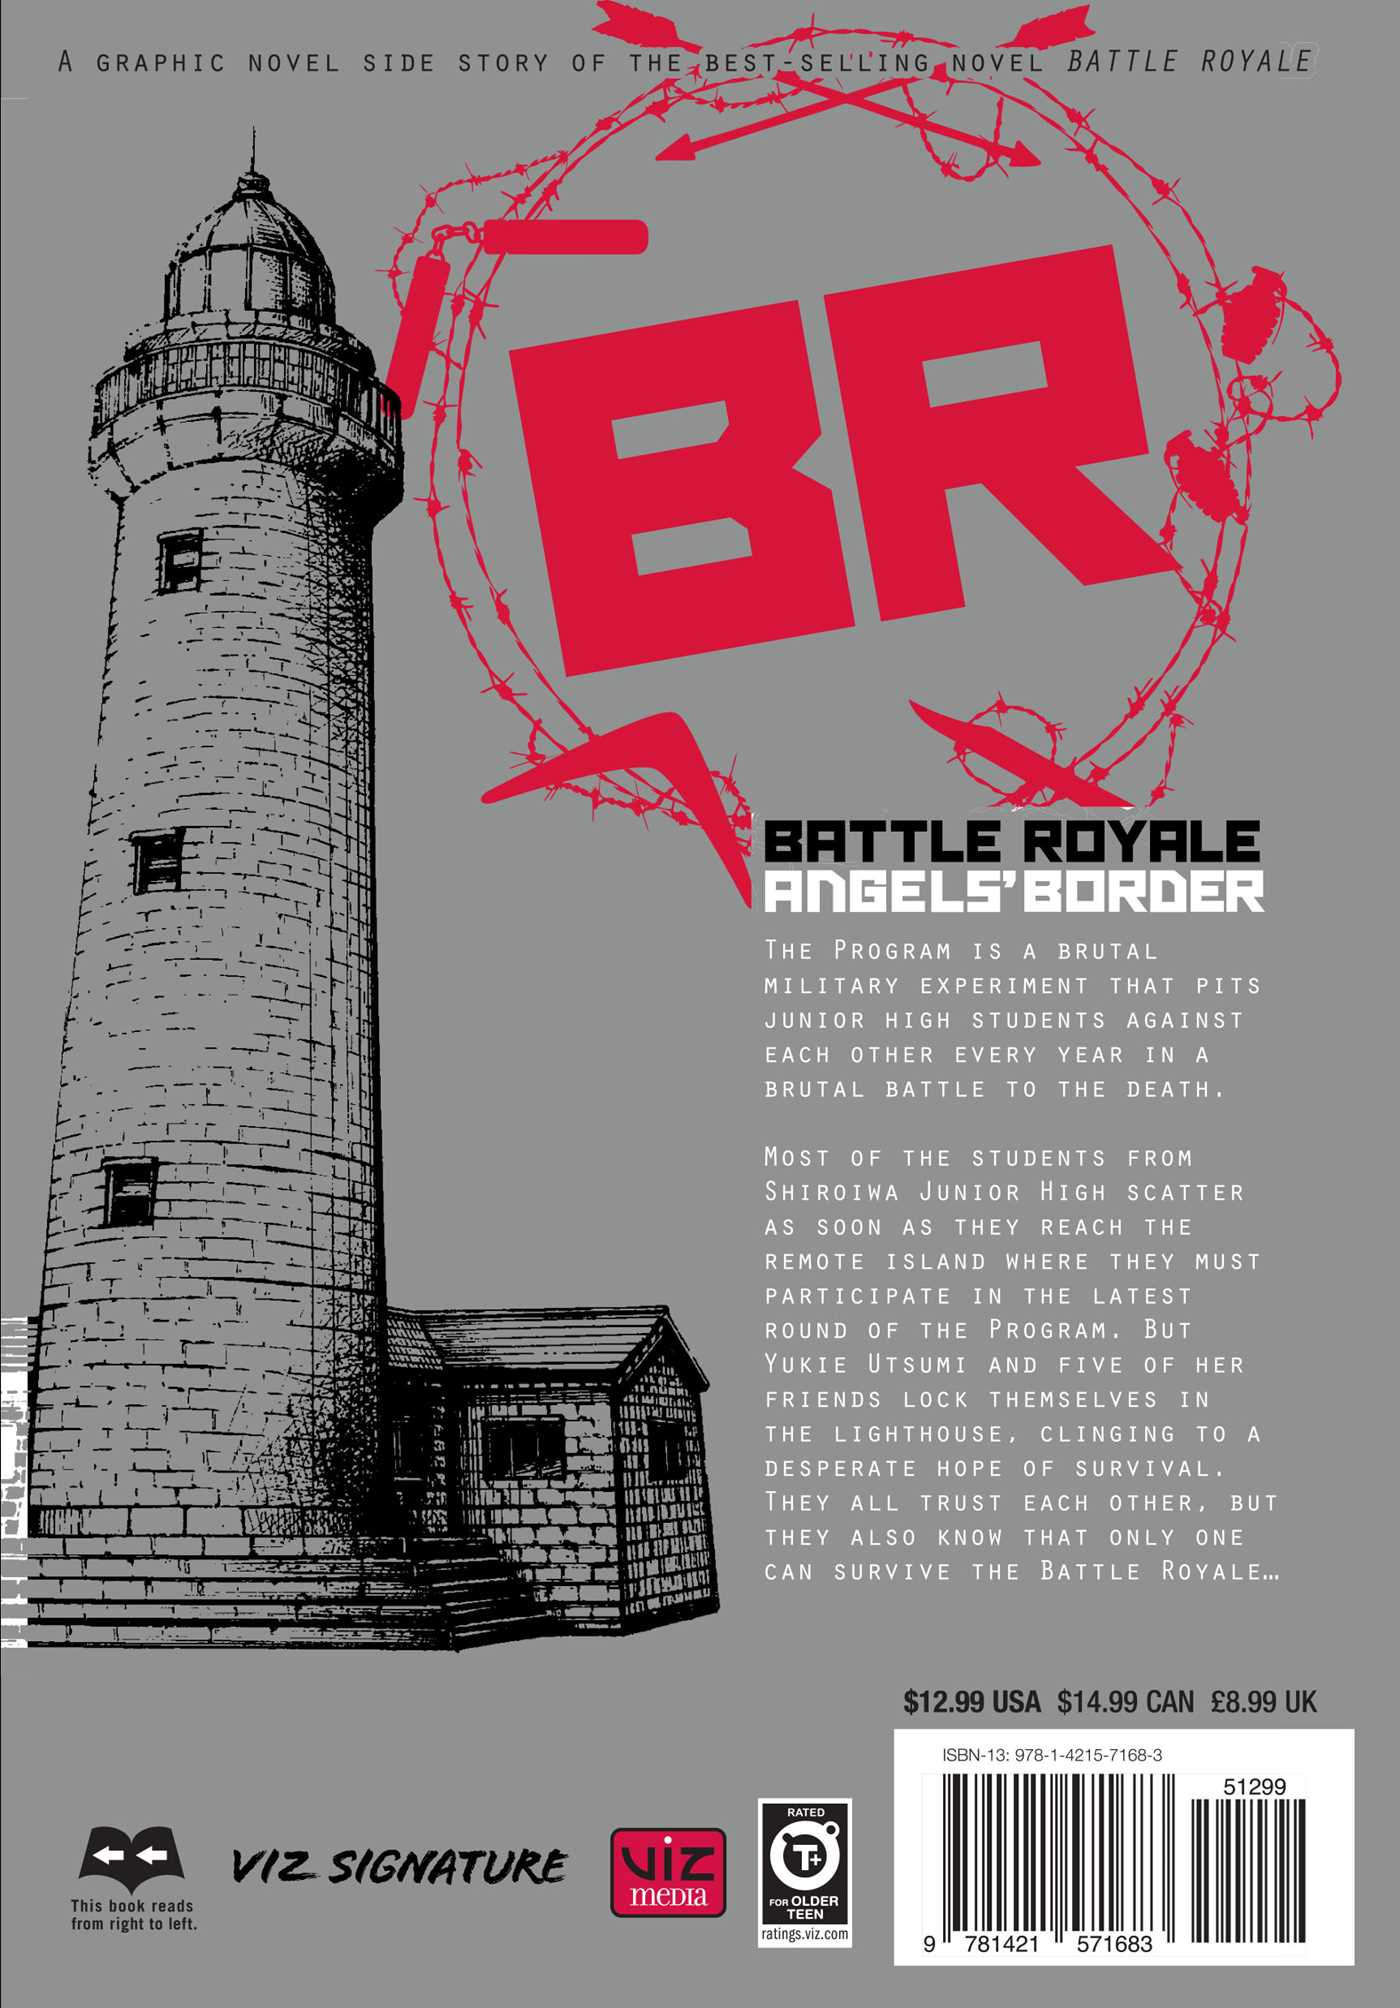 Battle royale angels border 9781421571683 hr back